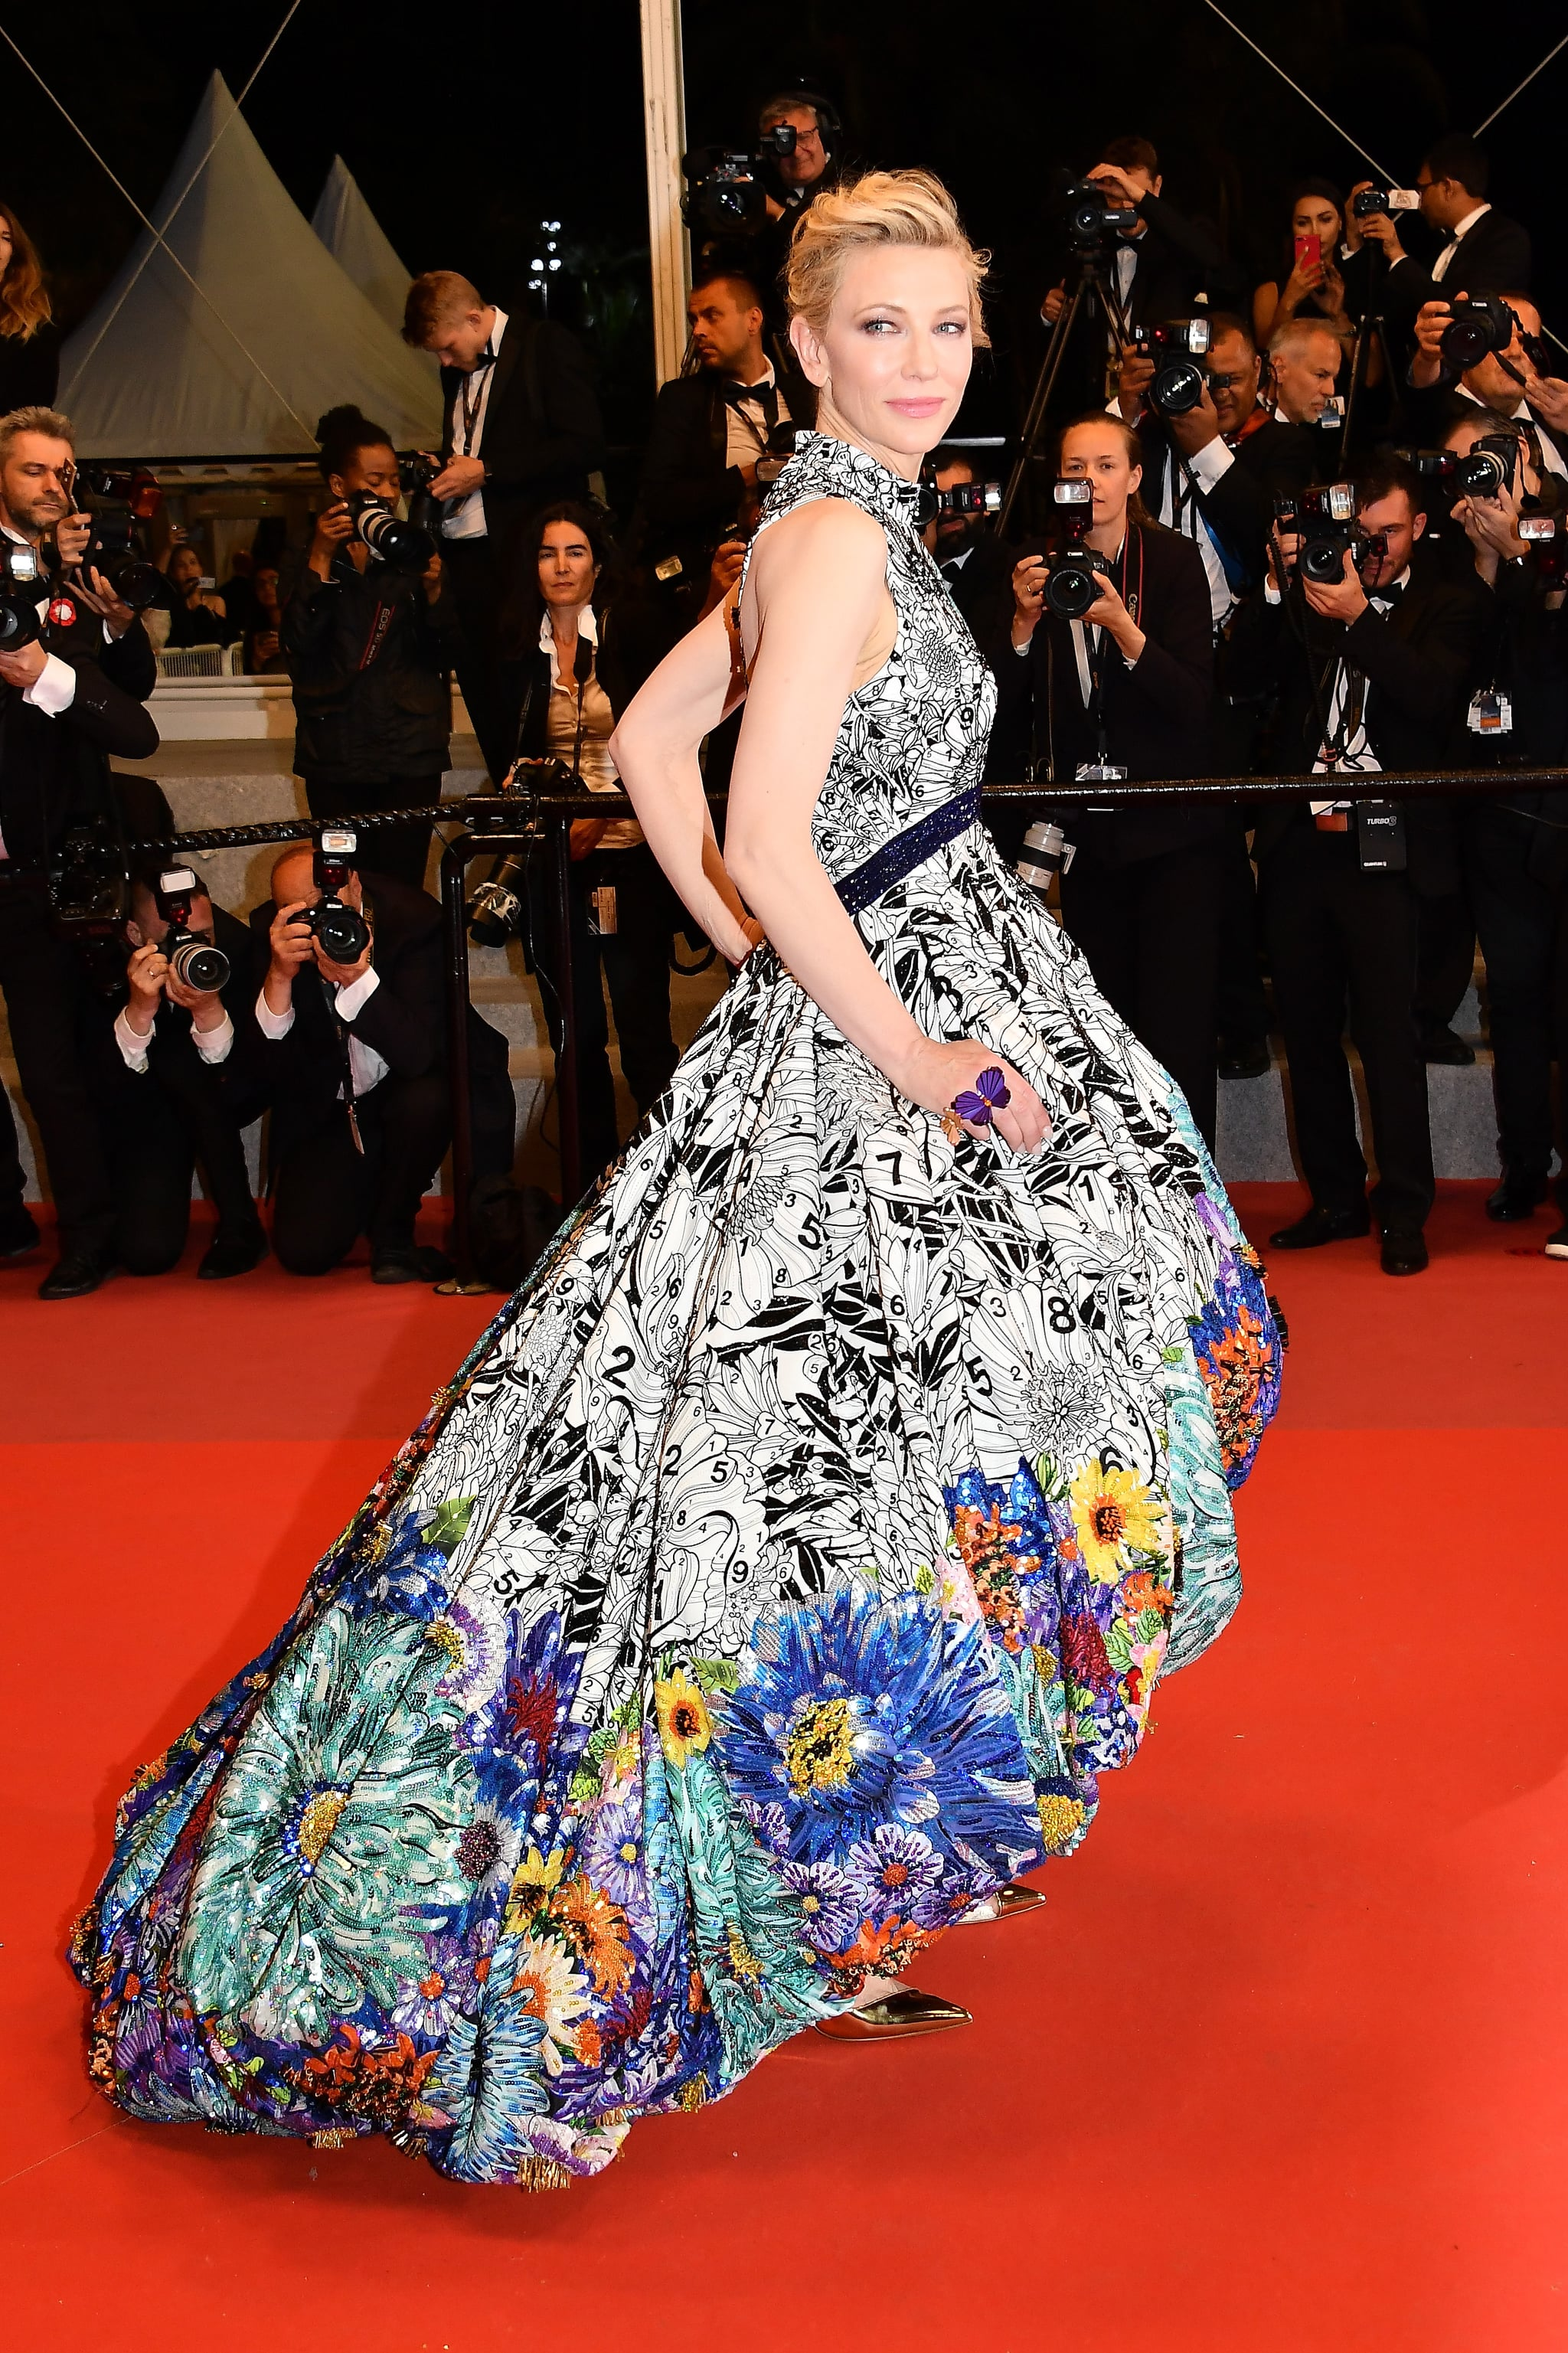 44_cate_blanchett_at_the_cold_war_premiere_at_cannes_film_festival_2018_mary_katrantzou.jpg